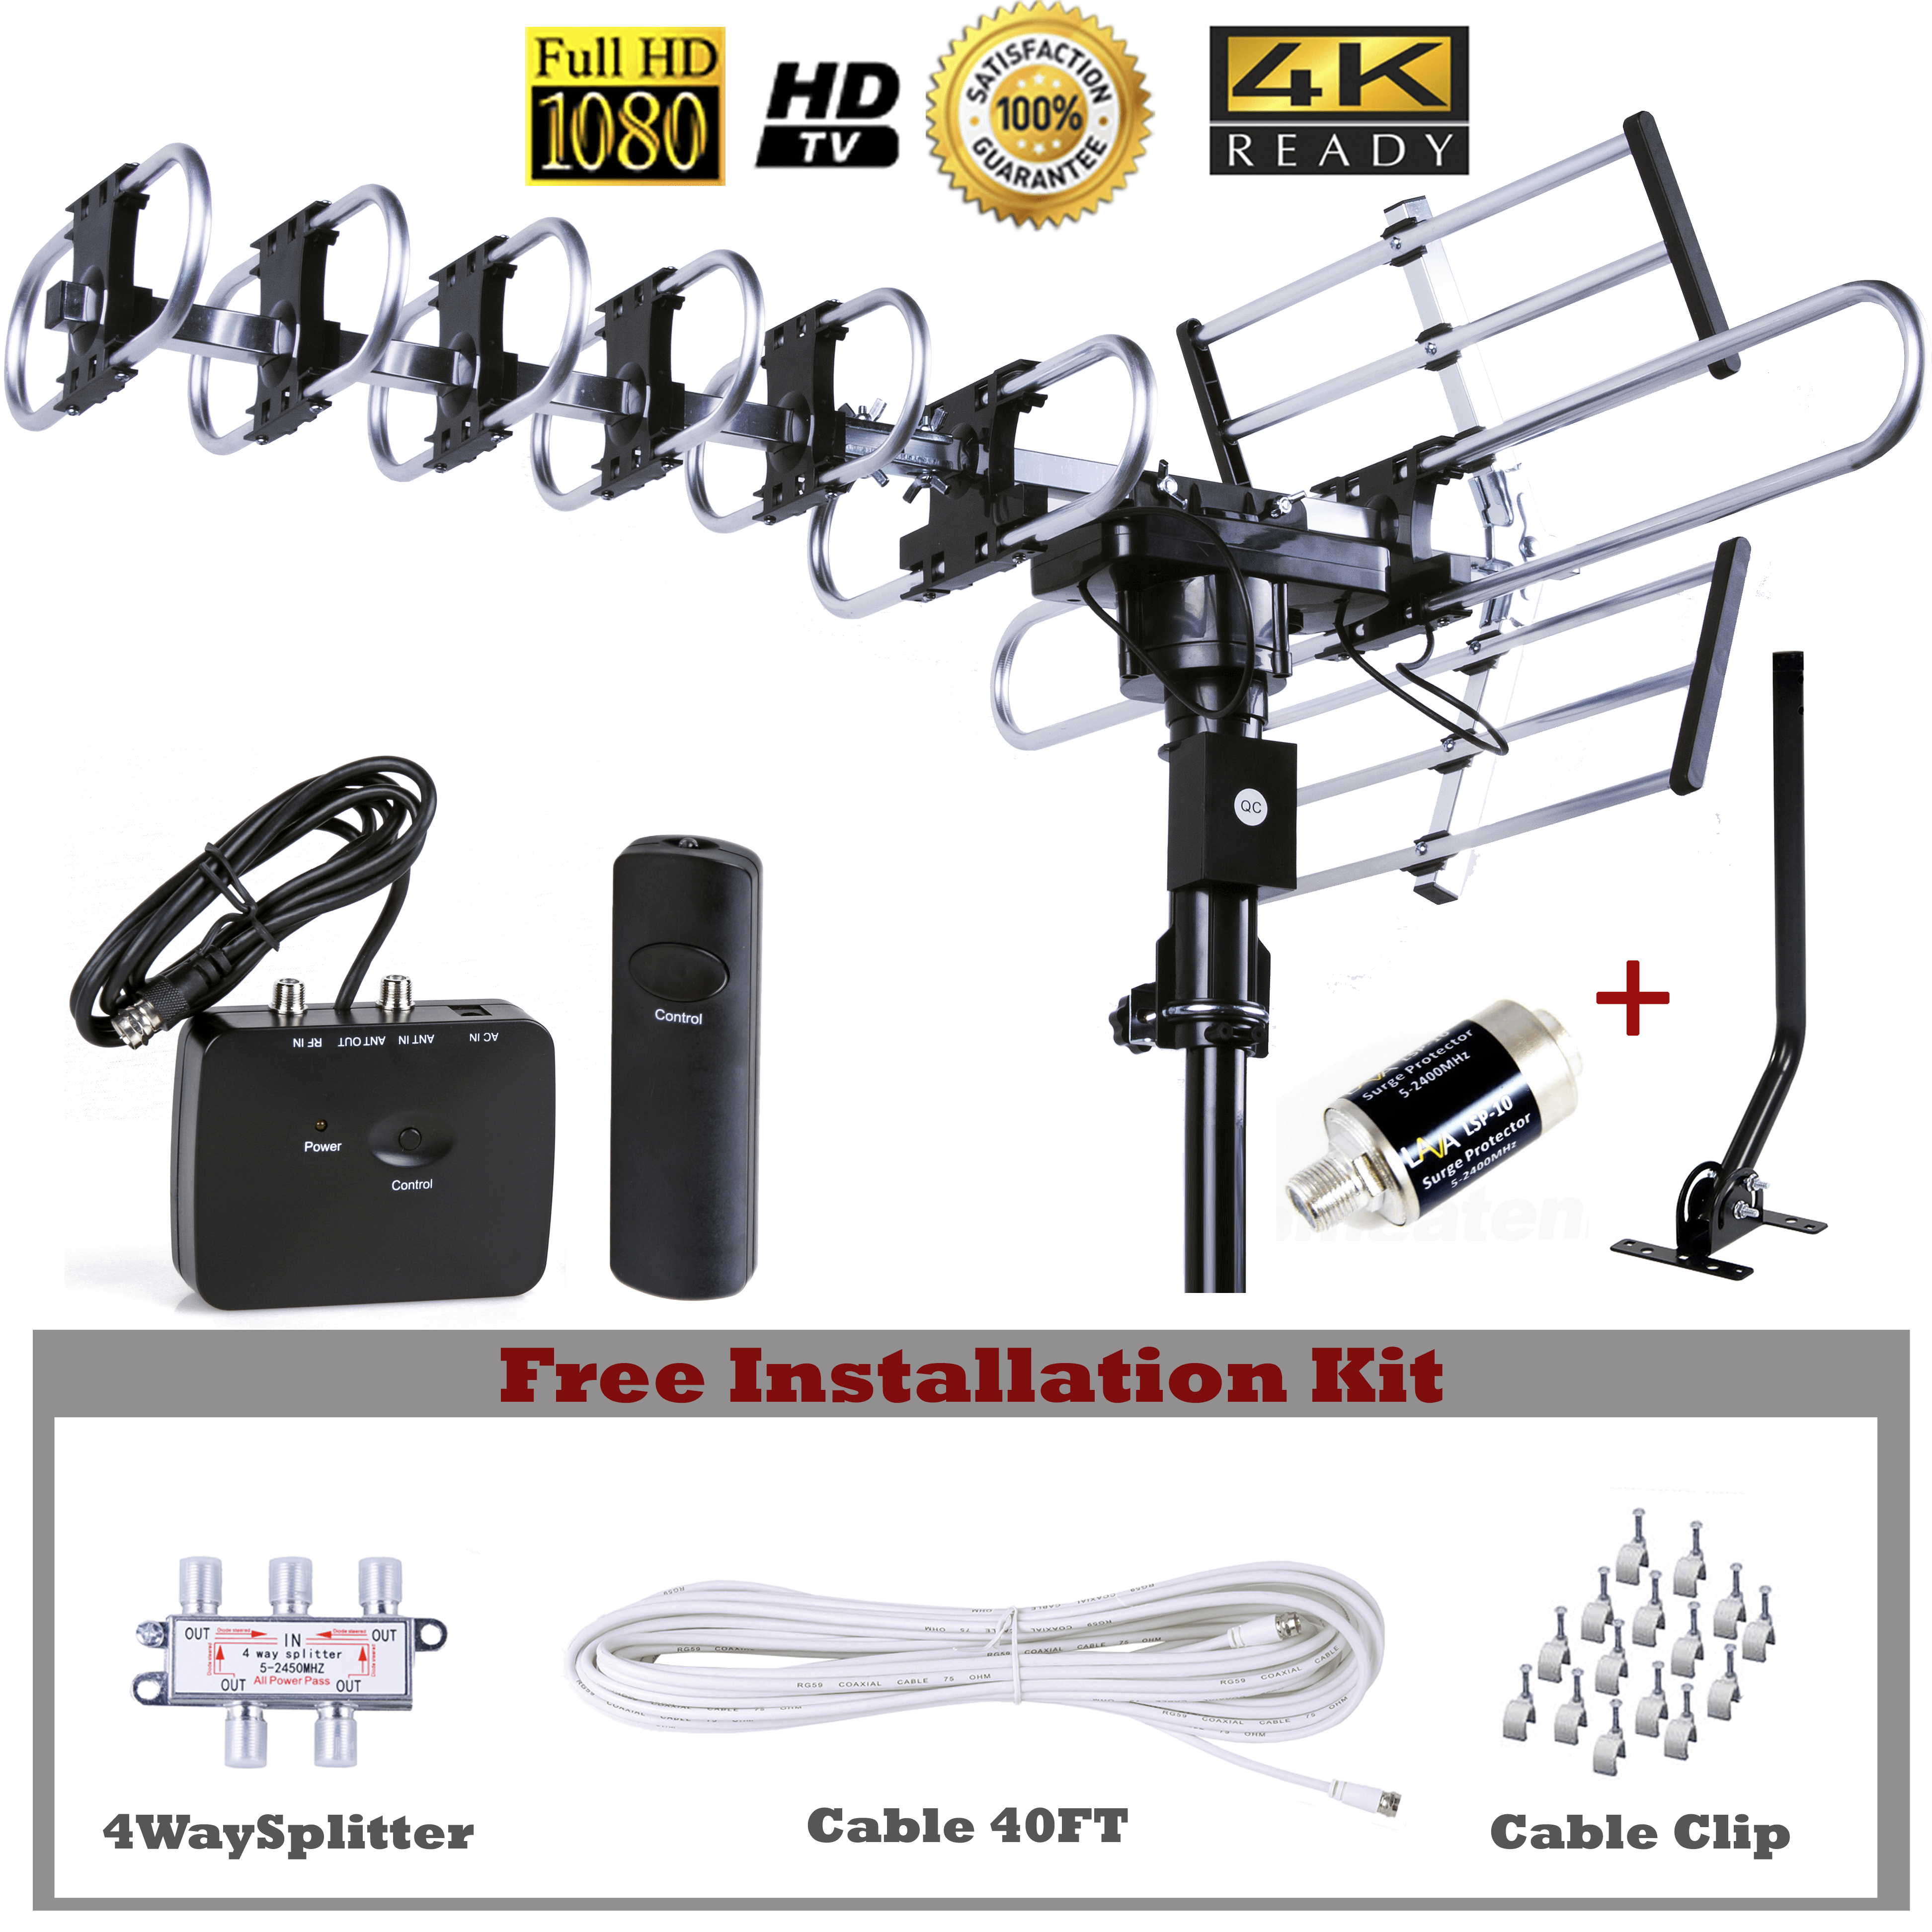 [Installation Kit + J-POLE + Surge Protector]Up to 200 Miles Long range Five Star Outdoor 4K HDTV Antenna with 360 Degree Rotation, UHF/VHF/FM Radio with Remote Control